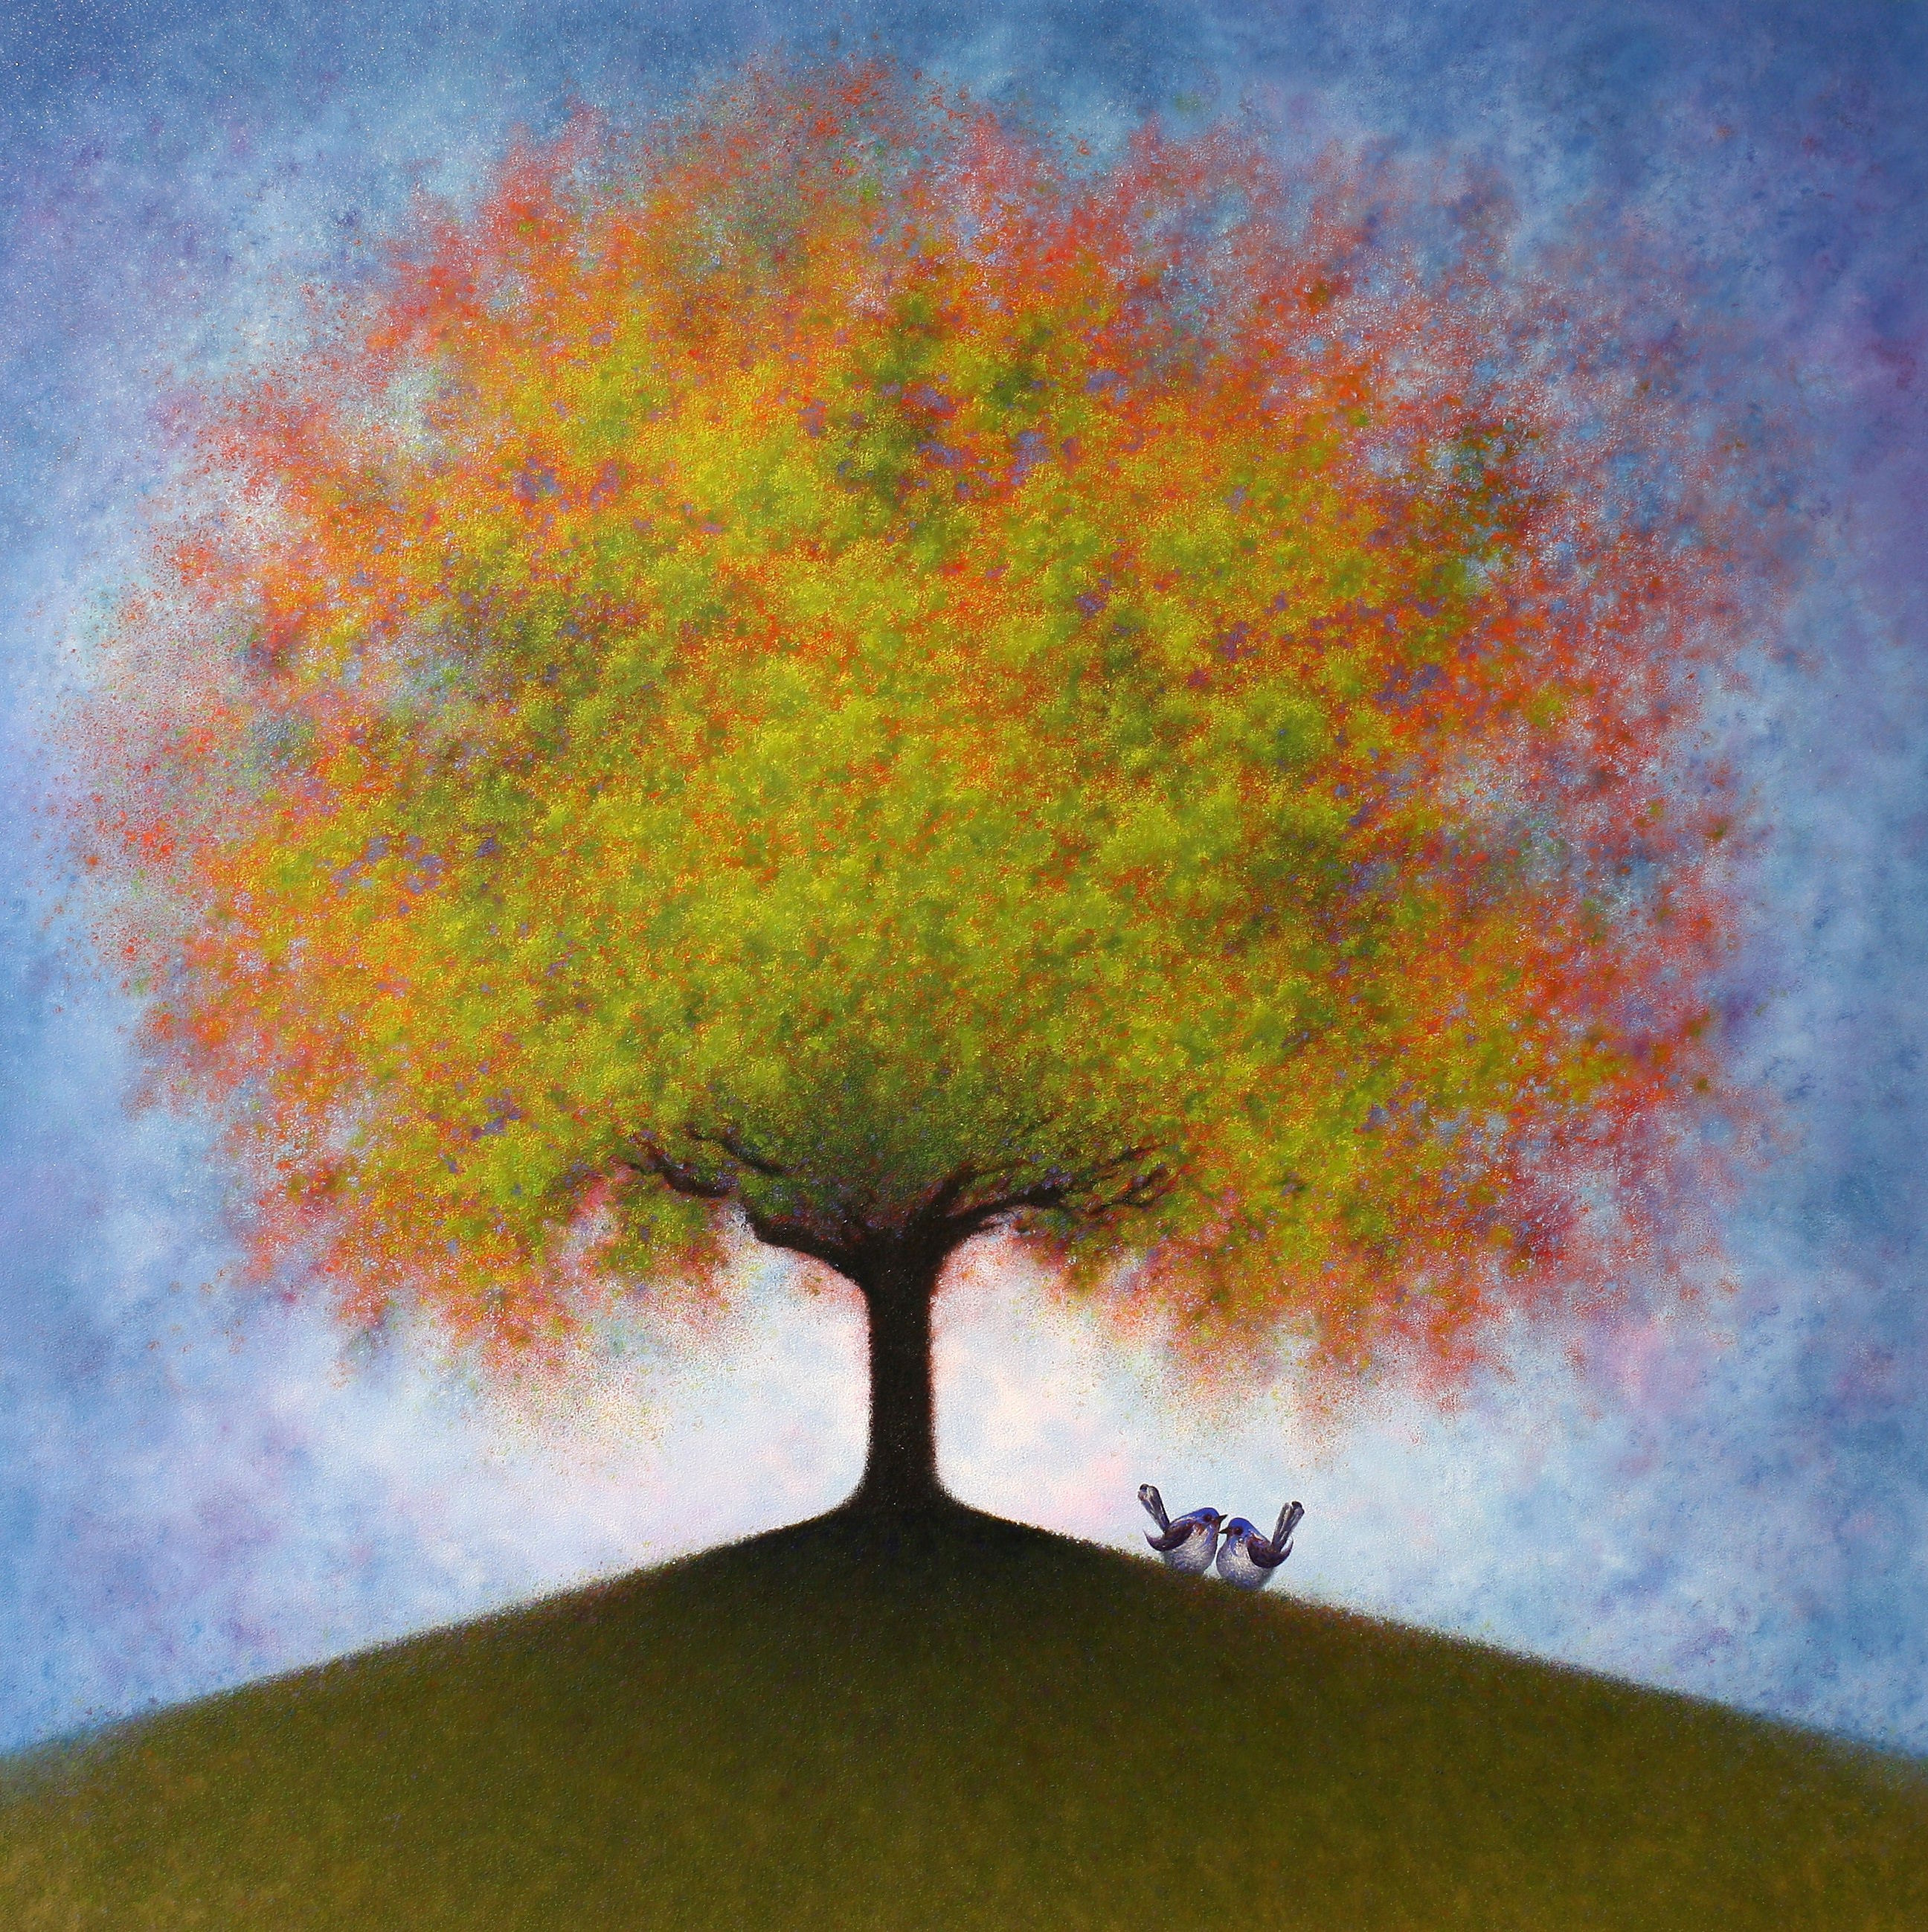 Jac's Tree of Life - painted by Alan Moloney - 102cm x 102cm . Oil on Canvas